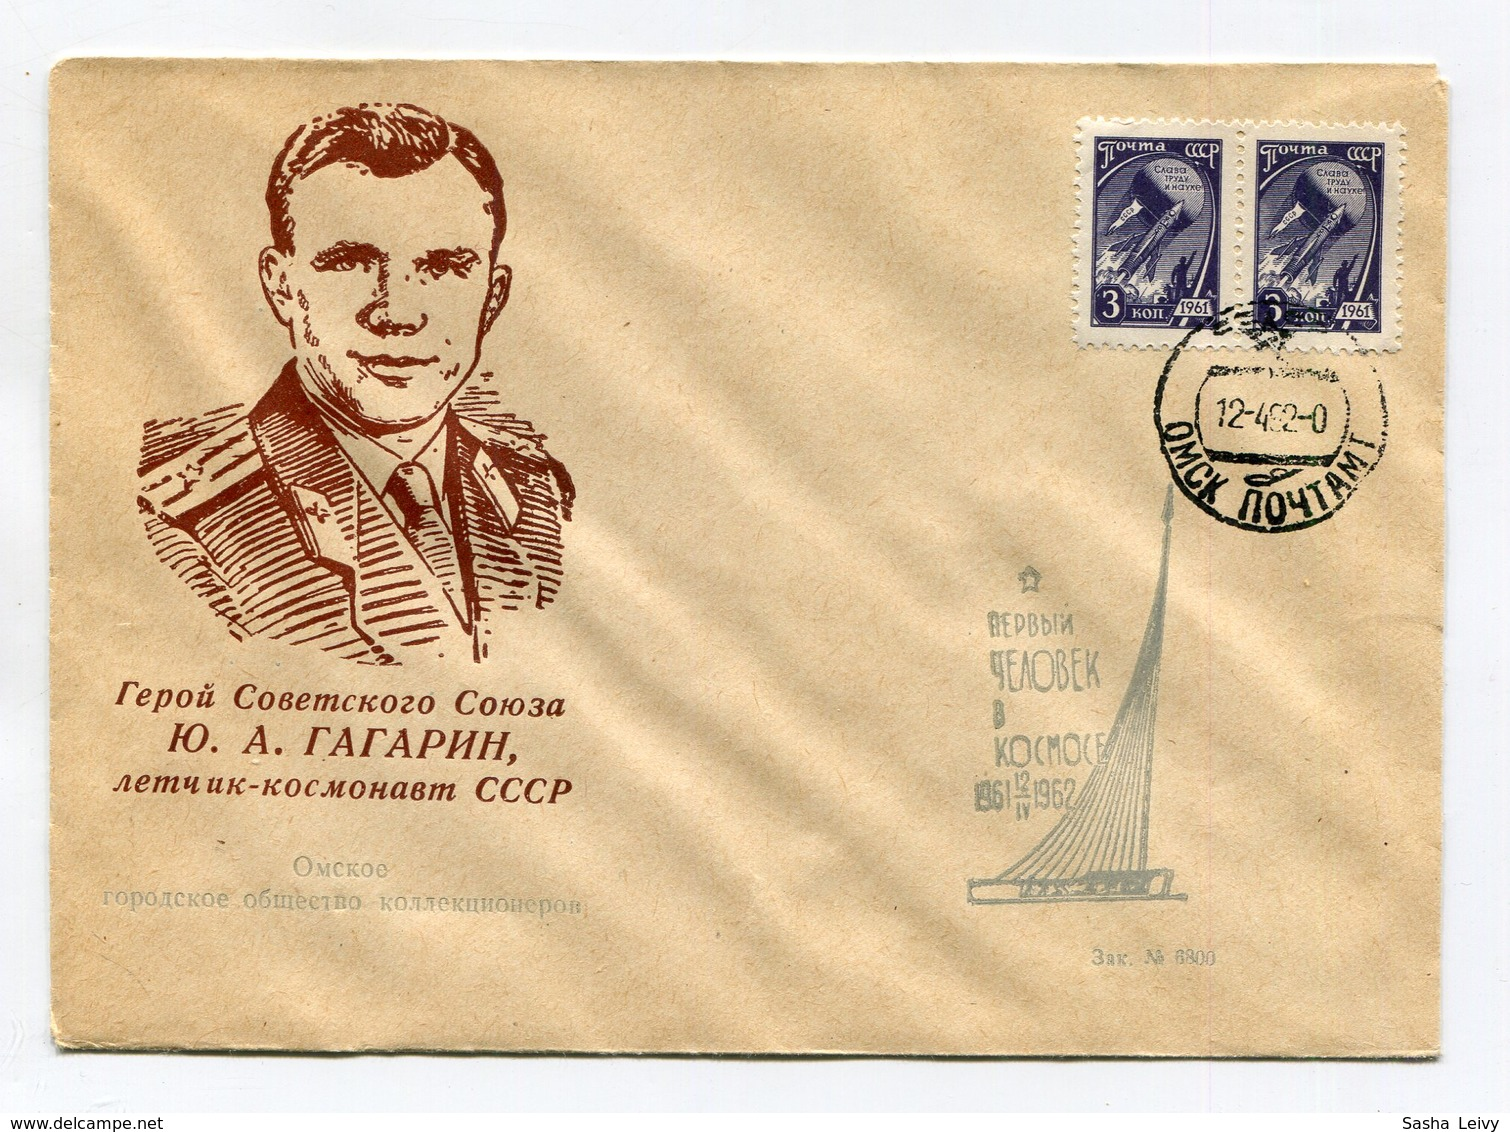 SPACE COVER USSR 1962 COSMONAUT YURI GAGARIN SPP OMSK - Russia & USSR